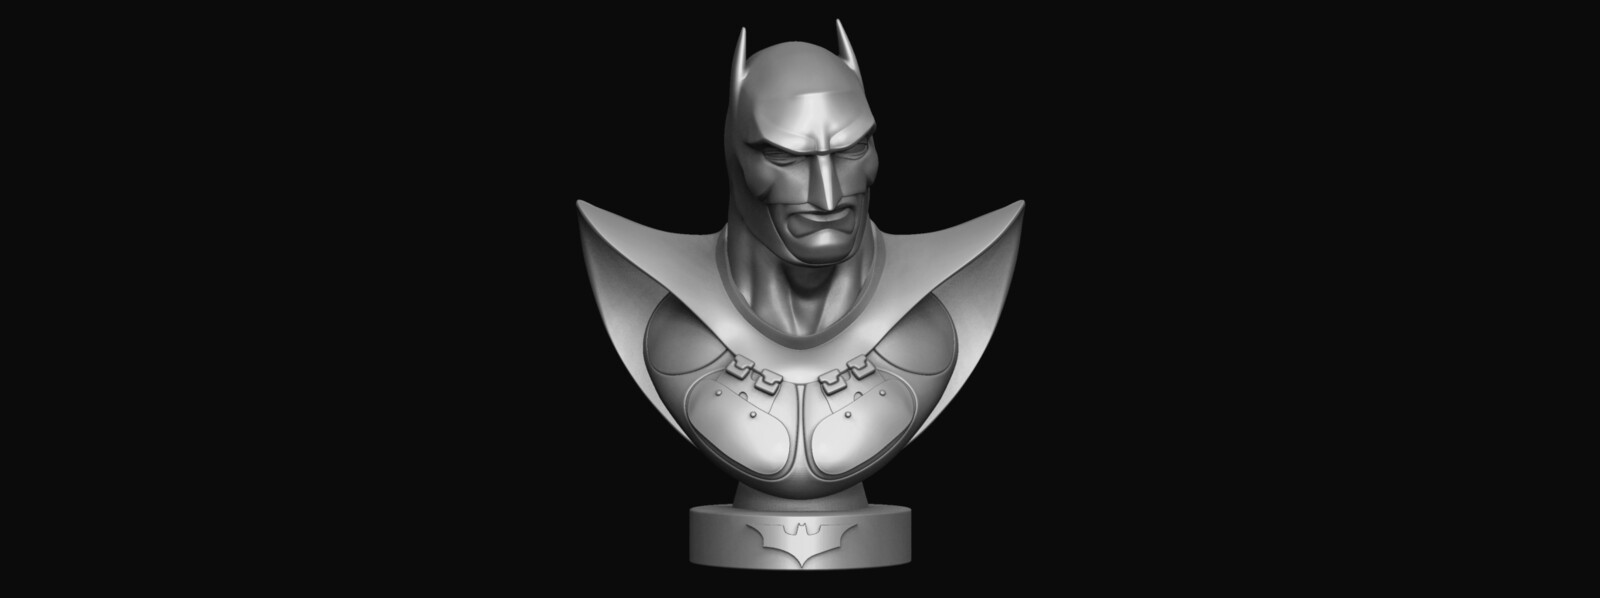 Zbrush Maquette for printing